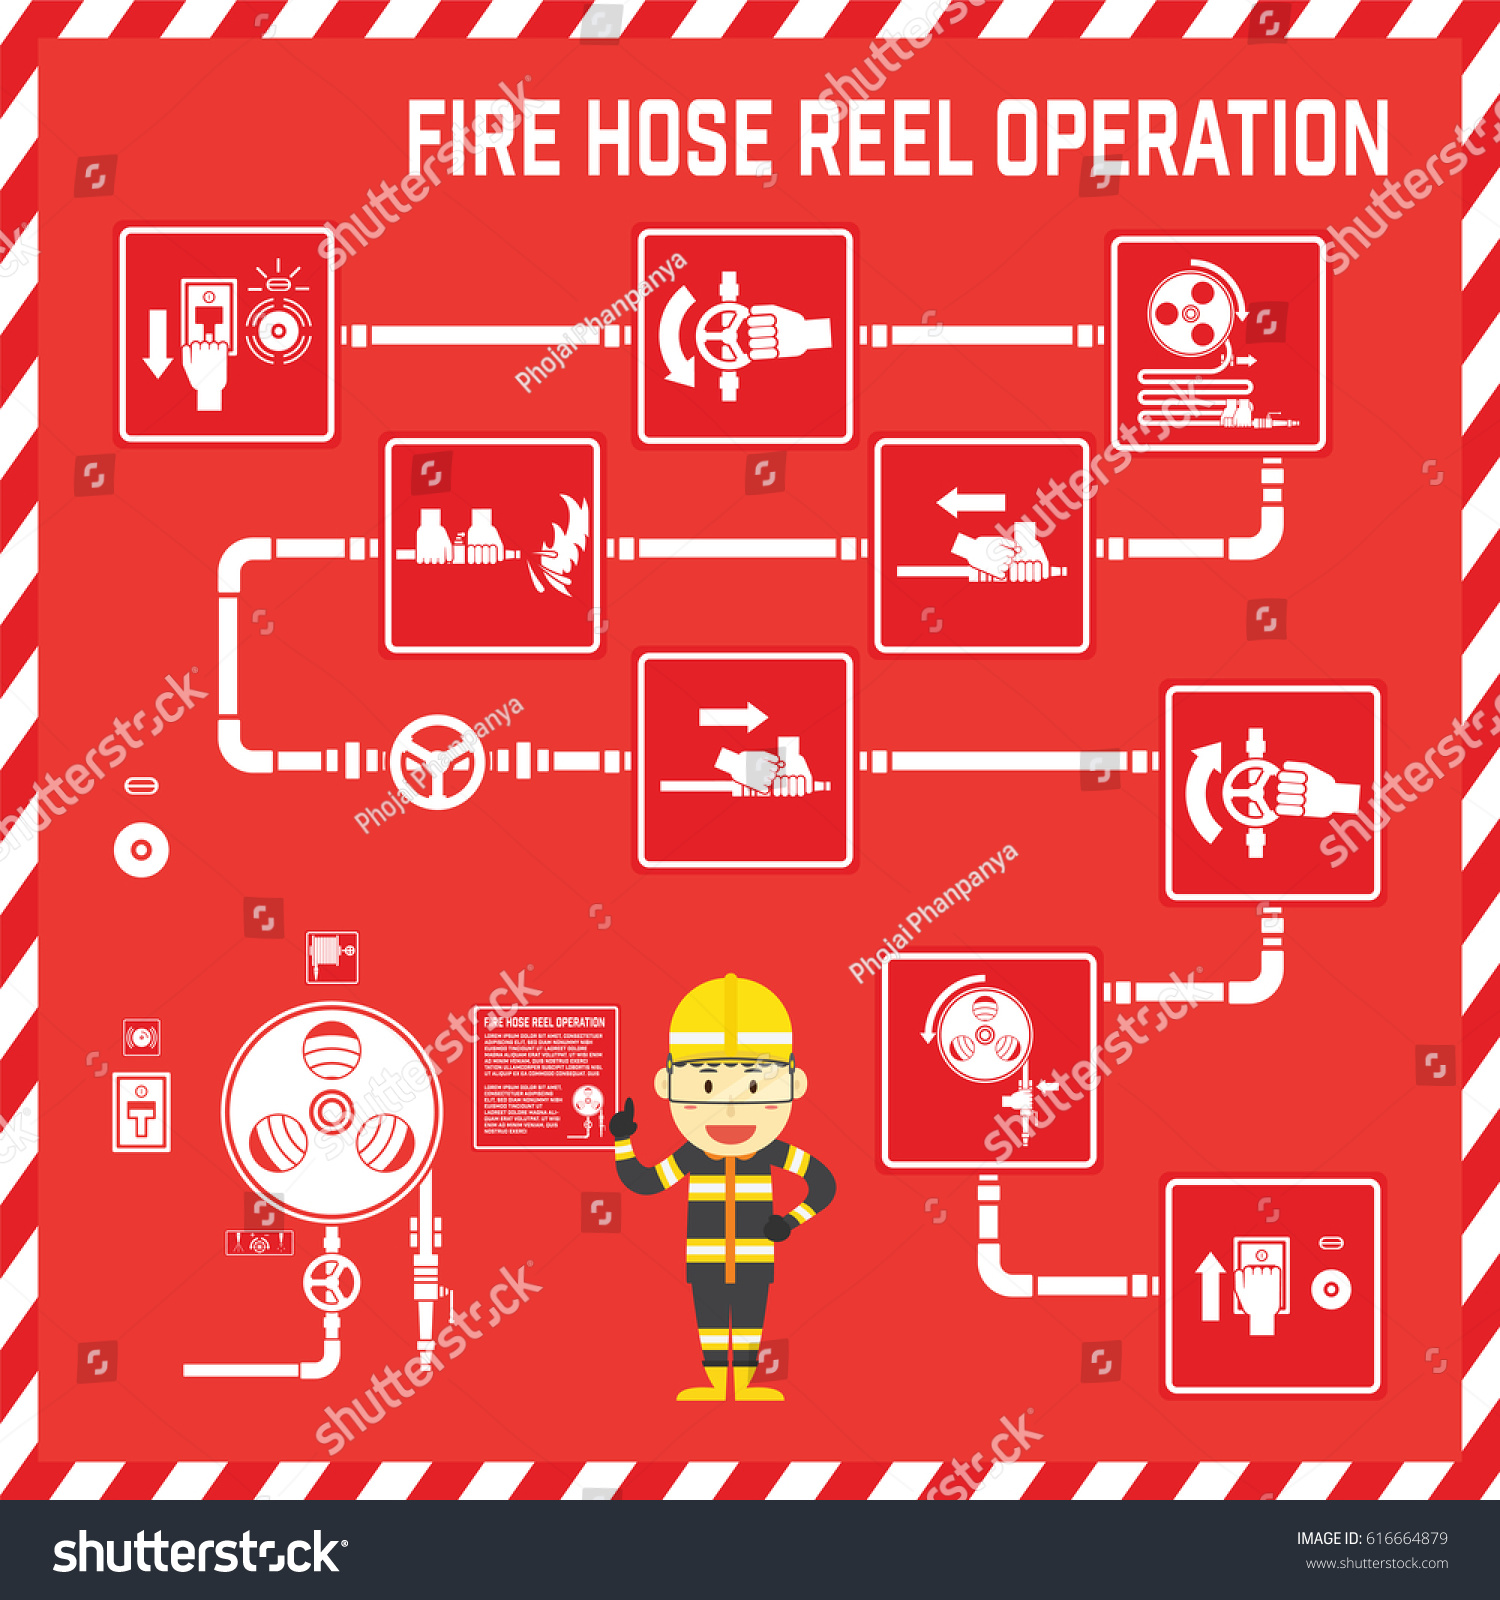 Set signs symbols fire hose reel stock vector 616664879 shutterstock set of signs and symbols of fire hose reel operation with cute fire fighter cartoon buycottarizona Images